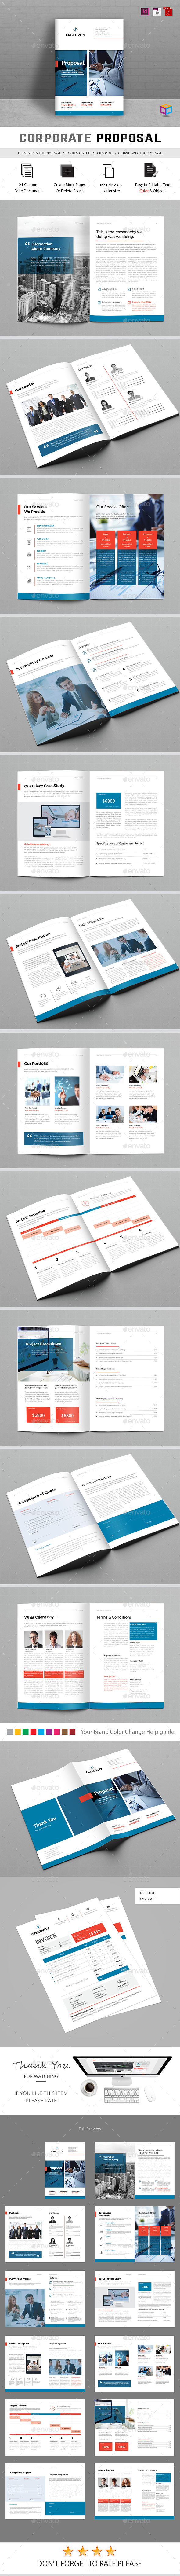 Proposal Template — InDesign Template #a4 #light #brand #corporate ...